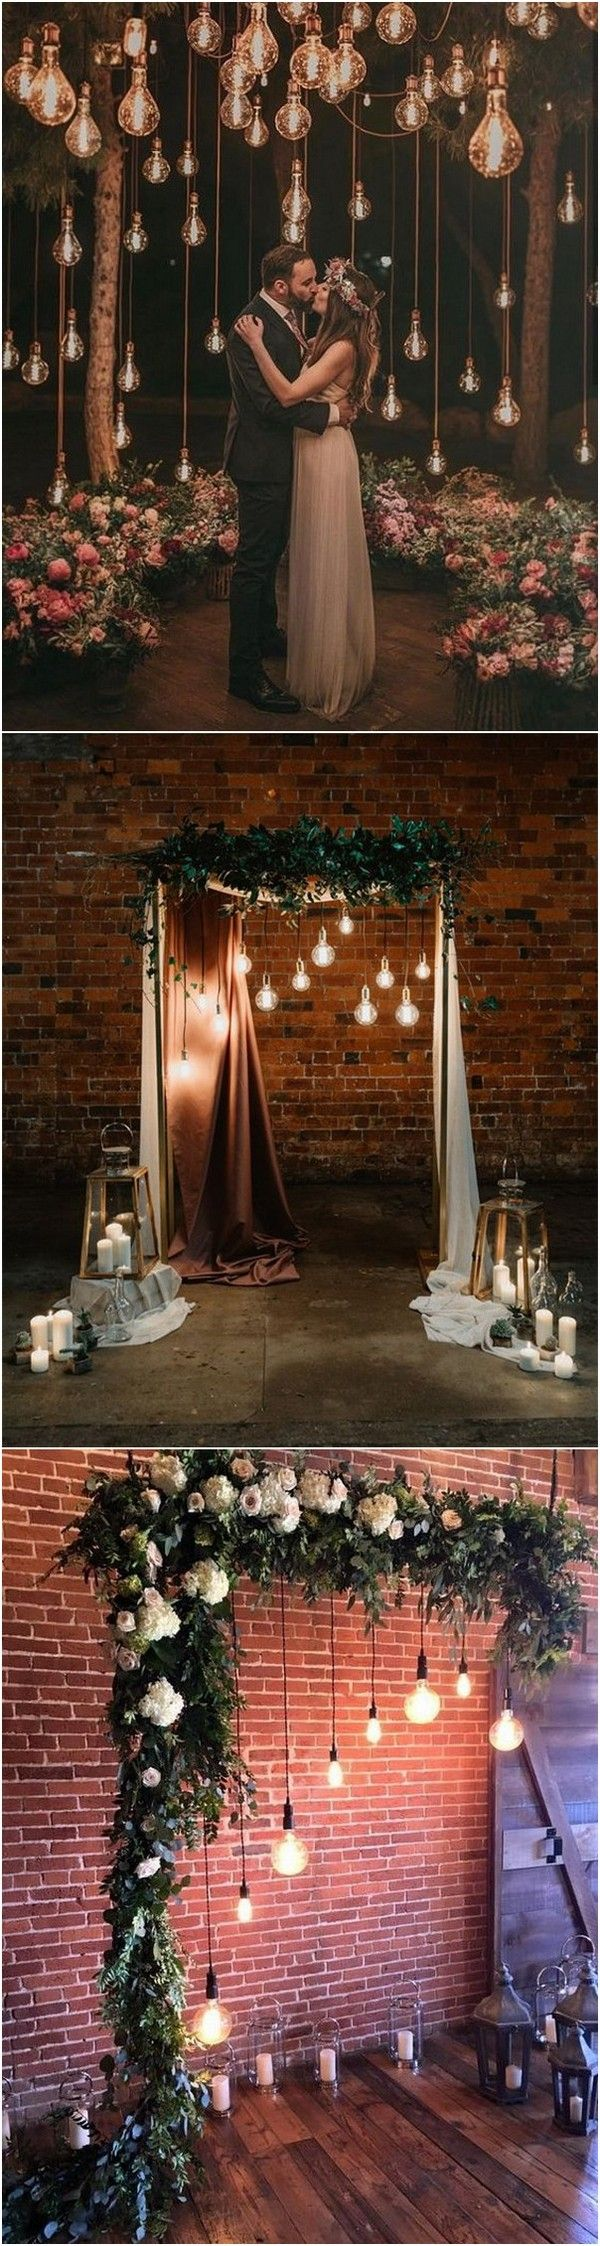 25 Trending Wedding Lighting Ideas with Edison Bulbs - Page 2 of 2 #weddingreception